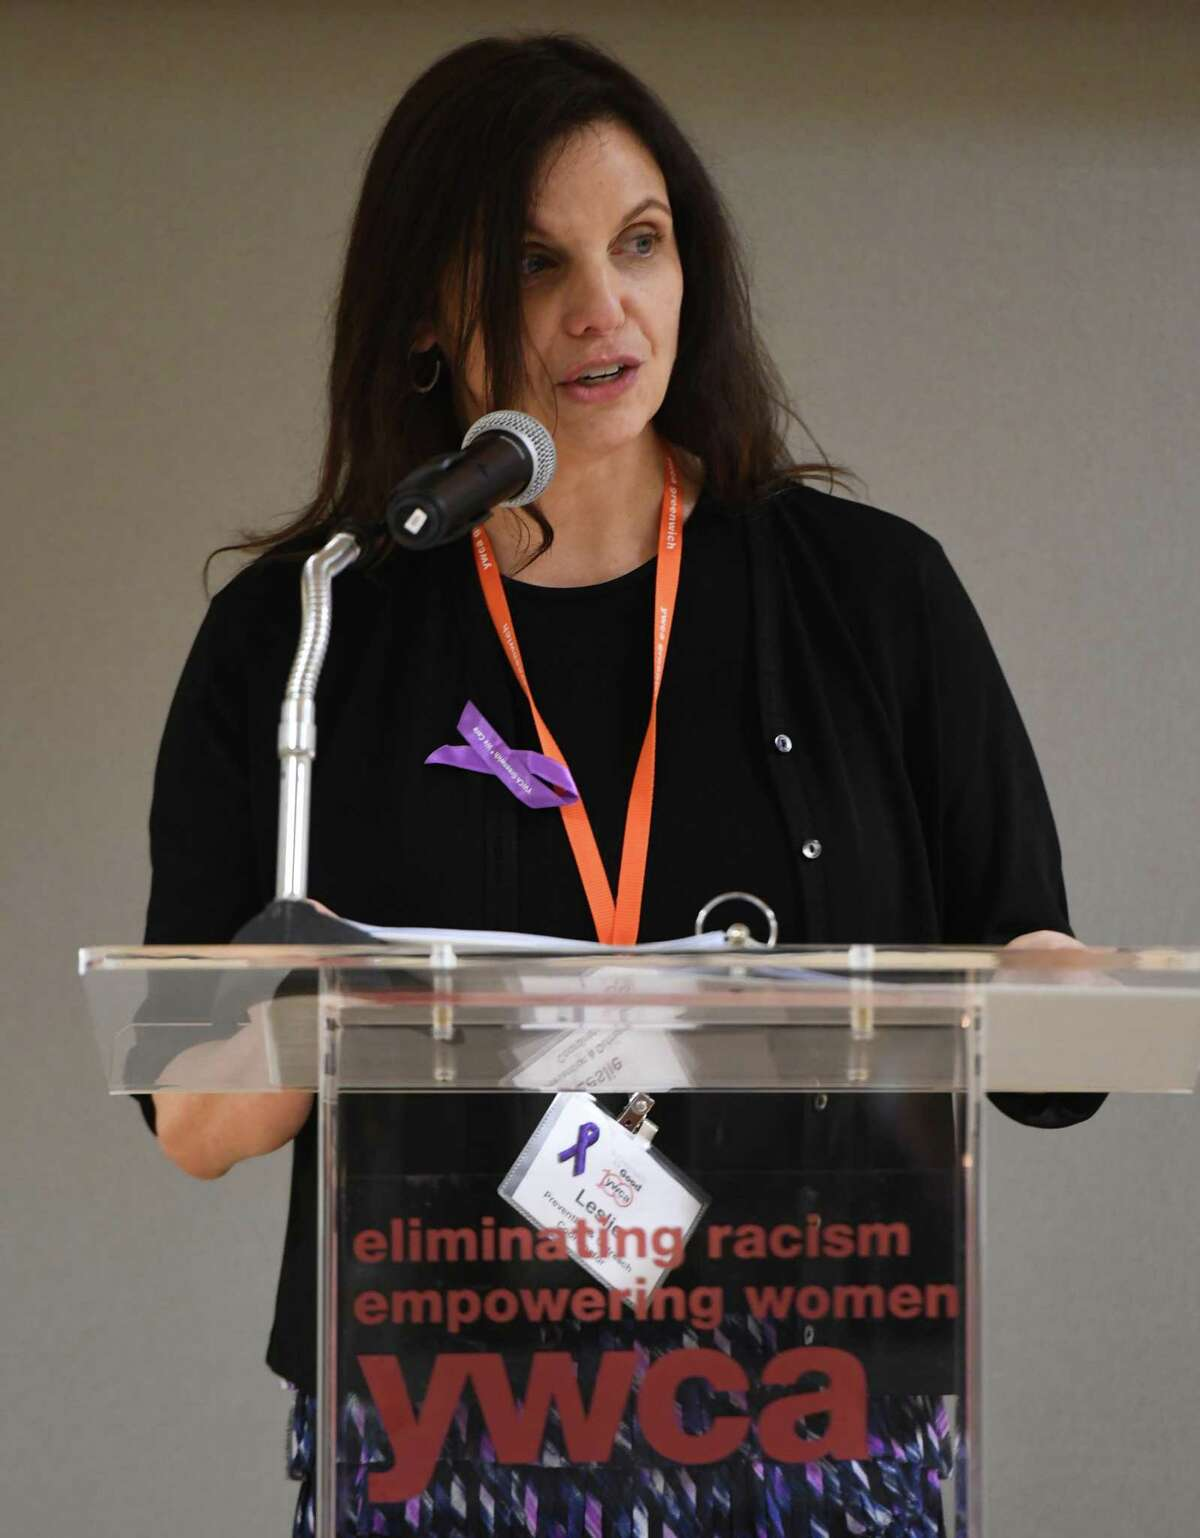 Domestic Abuse Services Prevention and Outreach Coordinator LEslie Coplin speaks at the annual Domestic Violence Candlelight Vigil and Art Show Reception at the YWCA in Greenwich, Conn. Thursday, Oct. 10, 2019.